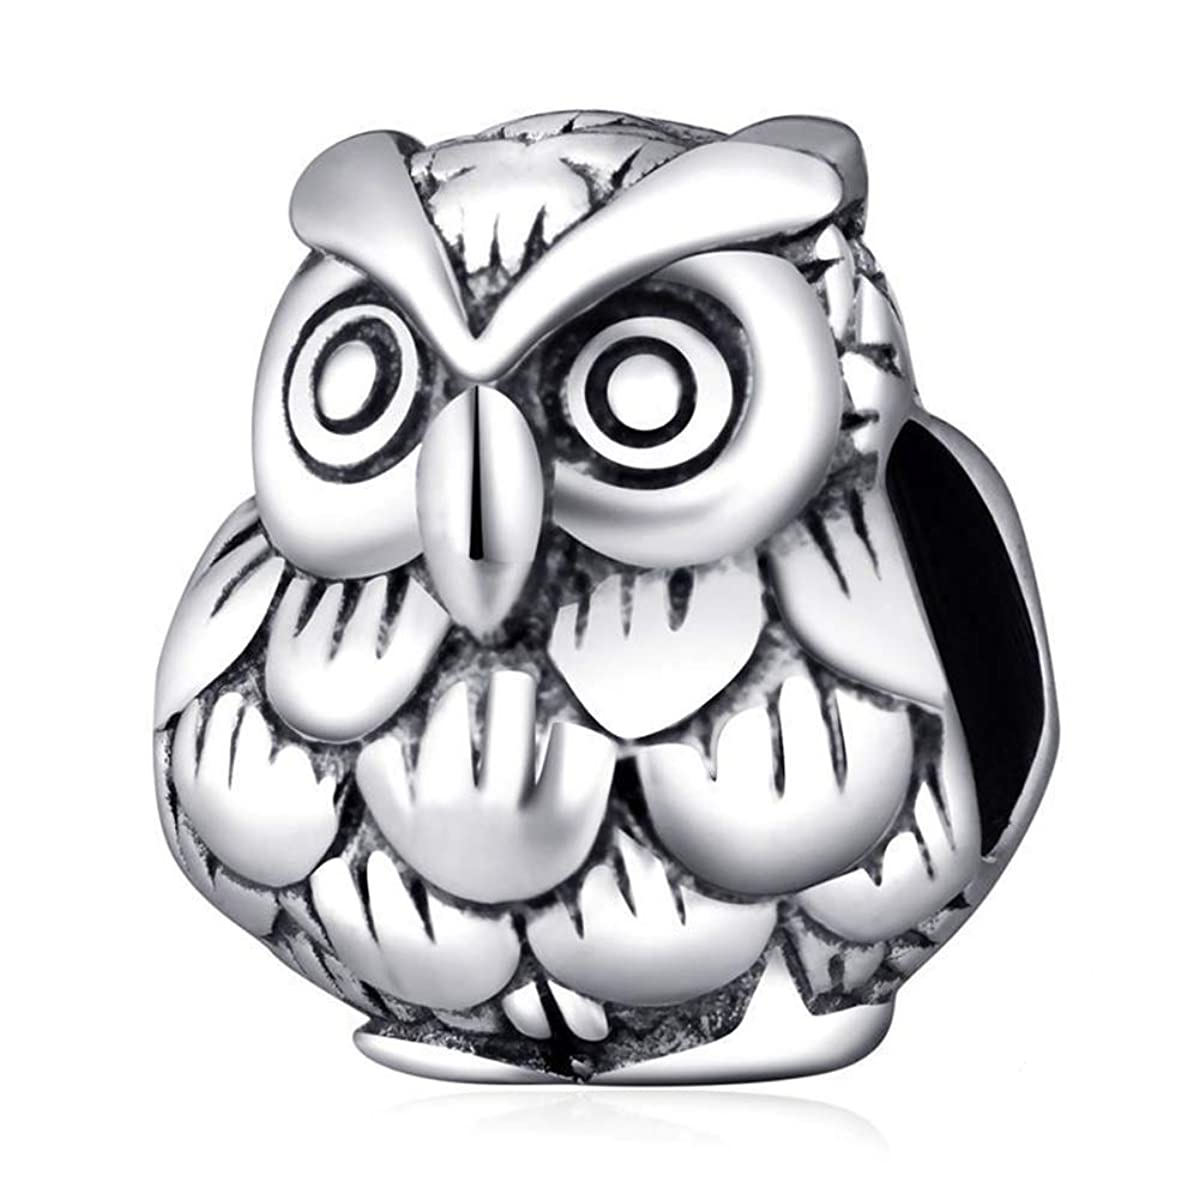 Owl Charm Authentic 925 Sterling Silver Animal Charm Bird Beads fits Bracelet